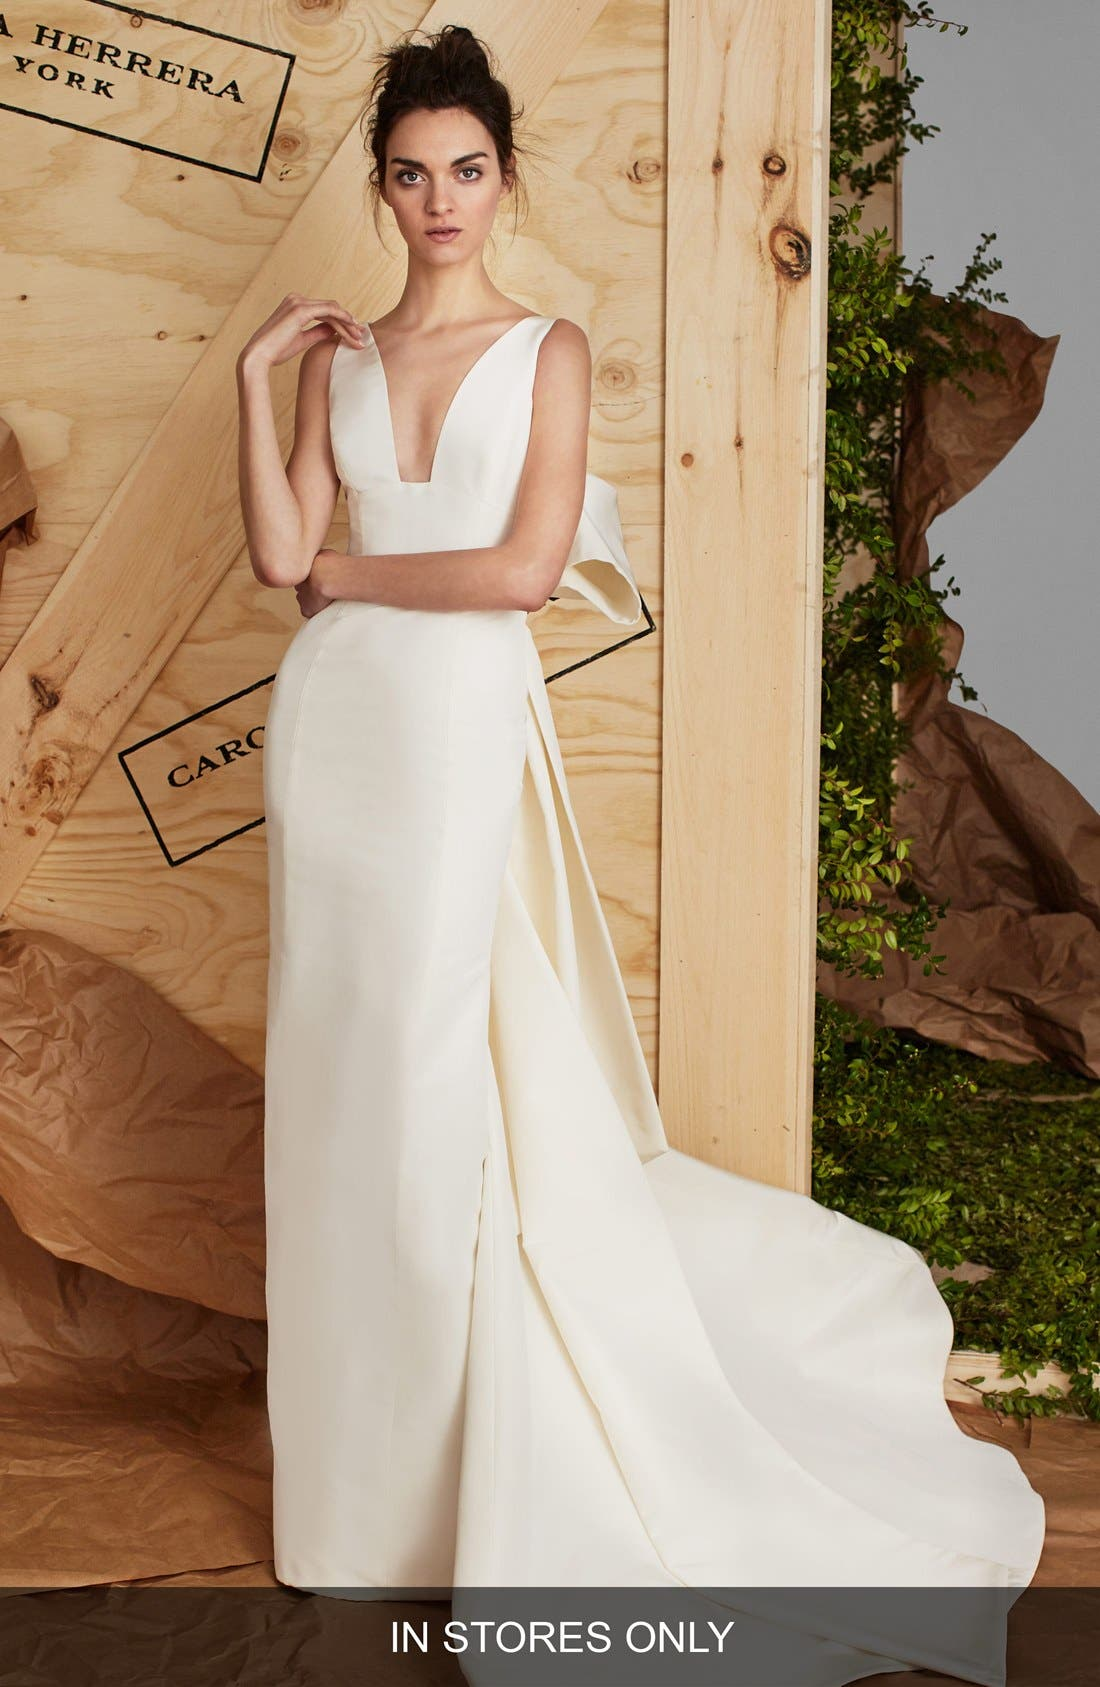 Silk Wedding Dresses for Guests